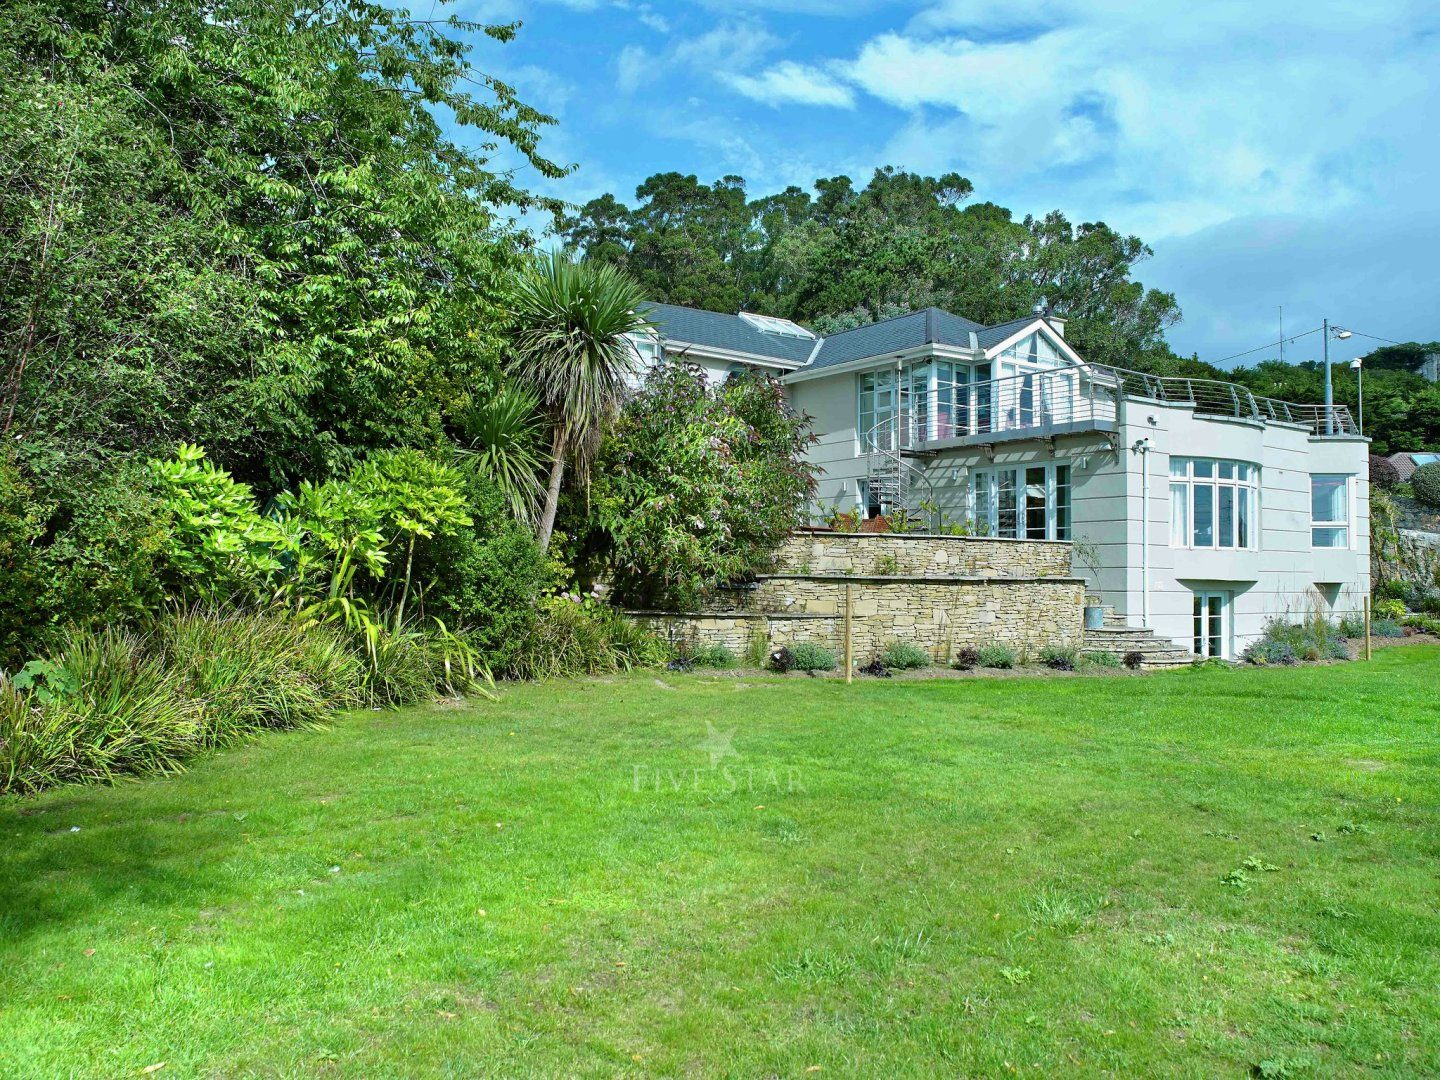 Hollywood Mansion Killiney photo 1